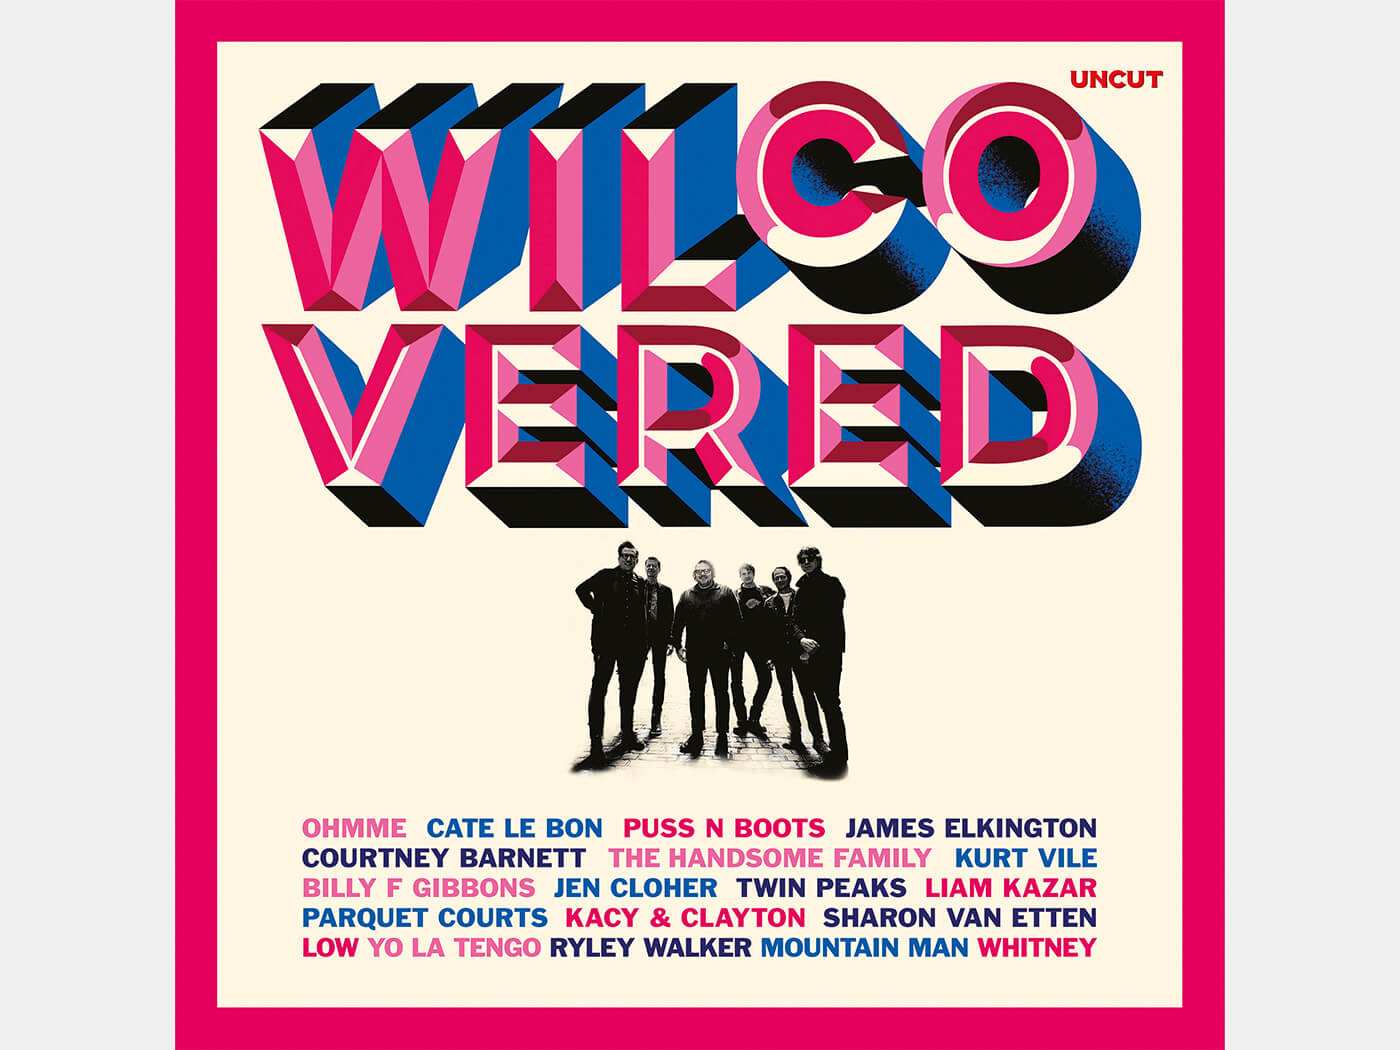 Uncut's Wilcovered CD comes to vinyl for Record Store Day